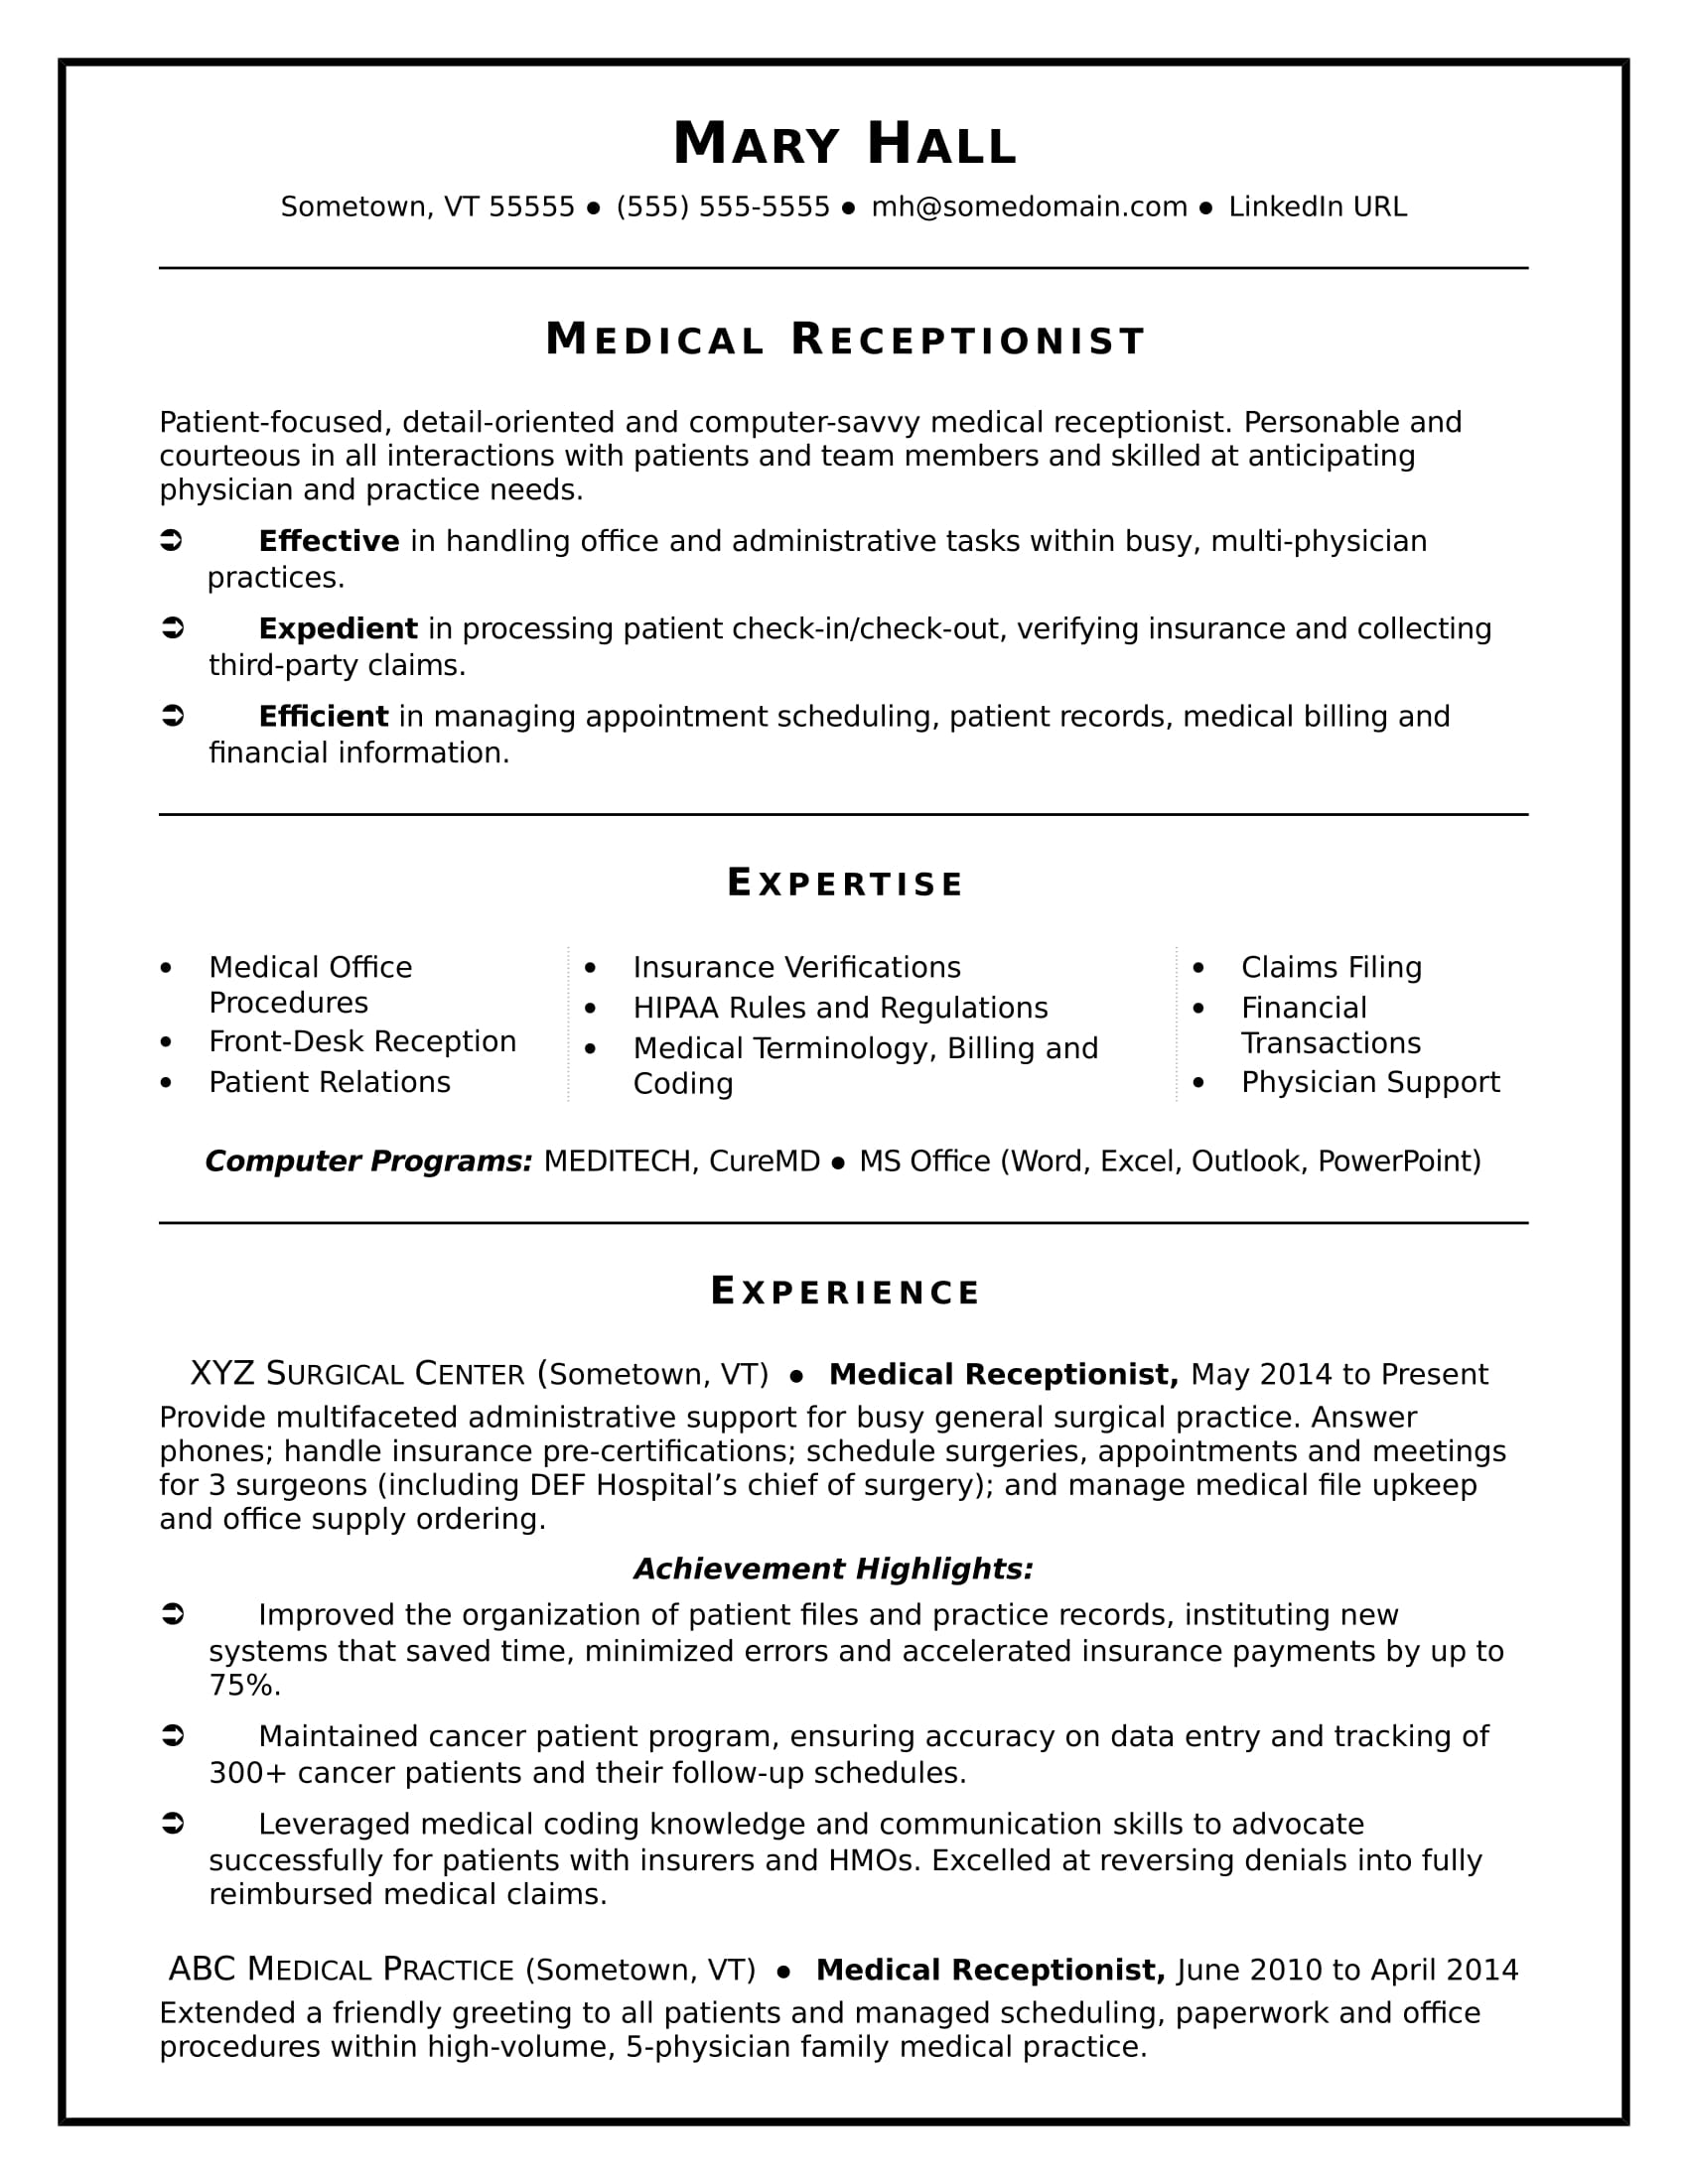 Medical Assistant Receptionist Resume Medical Receptionist Resume Sample Monster